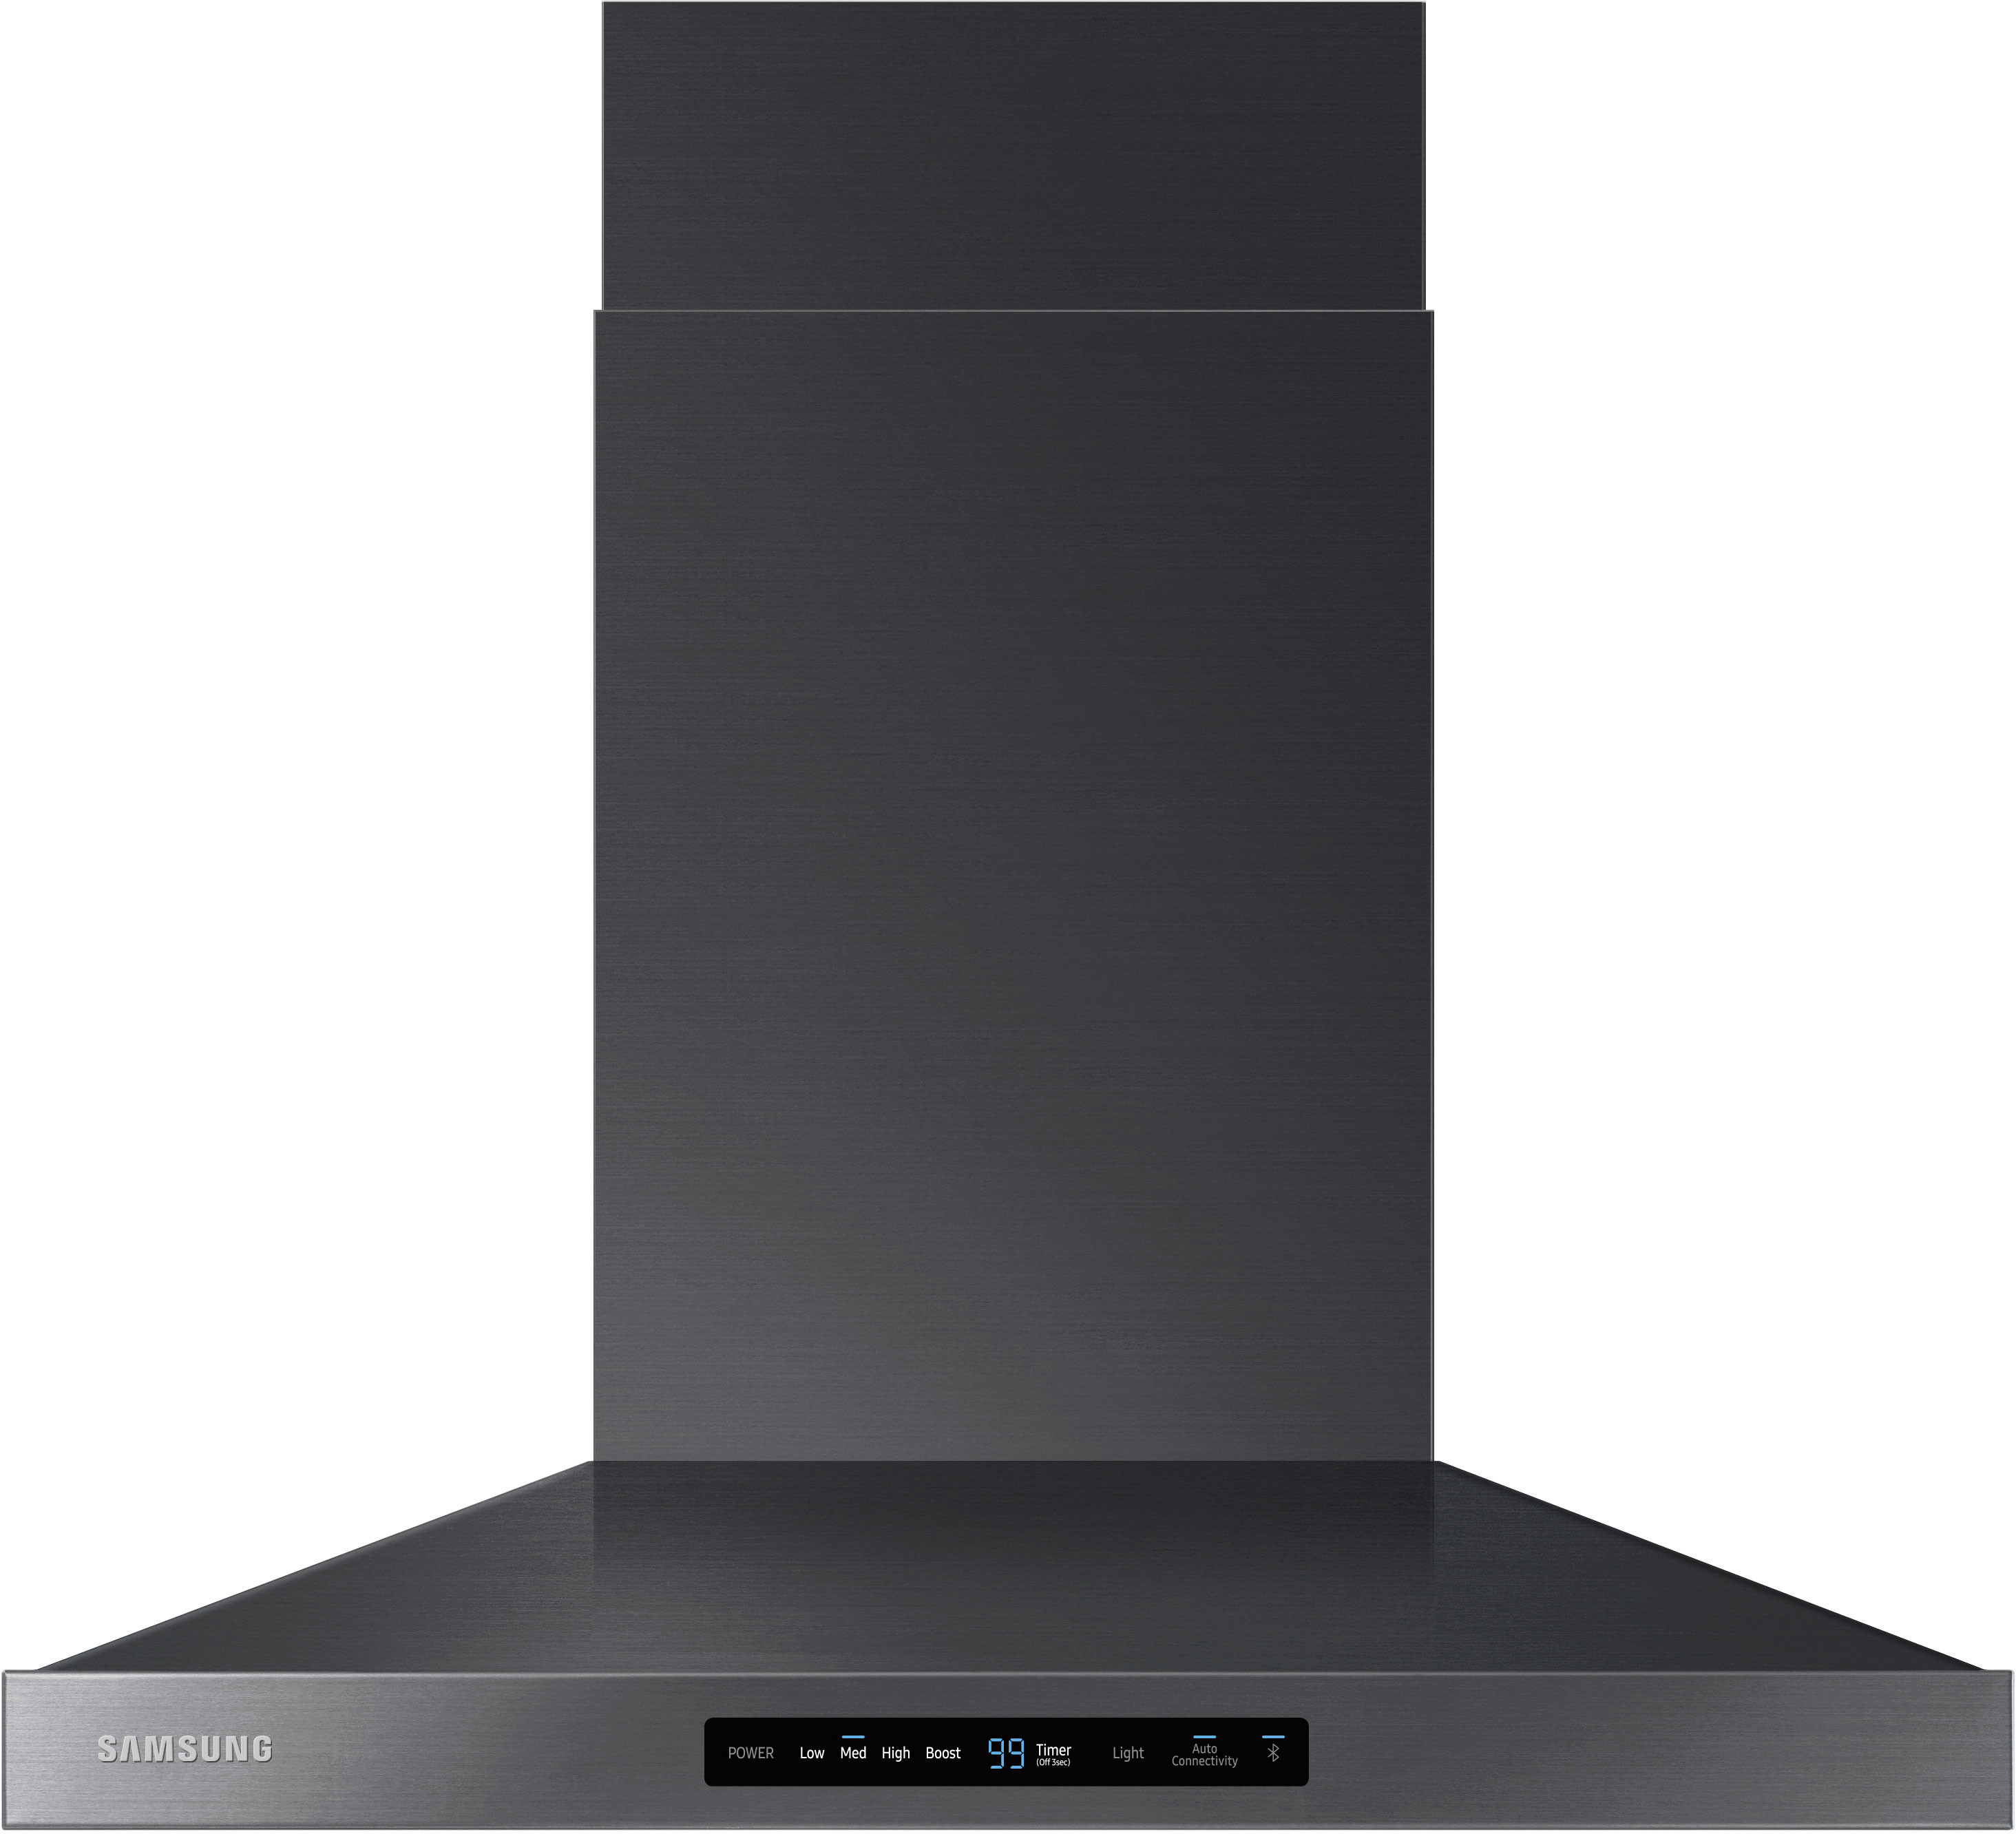 Samsung Nk30k7000wg 30 Inch Wall Mount Chimney Range Hood With 600 Cfm 4 Sds Booster Led Cooktop Lighting Digital Touch Controls Dishwasher Safe